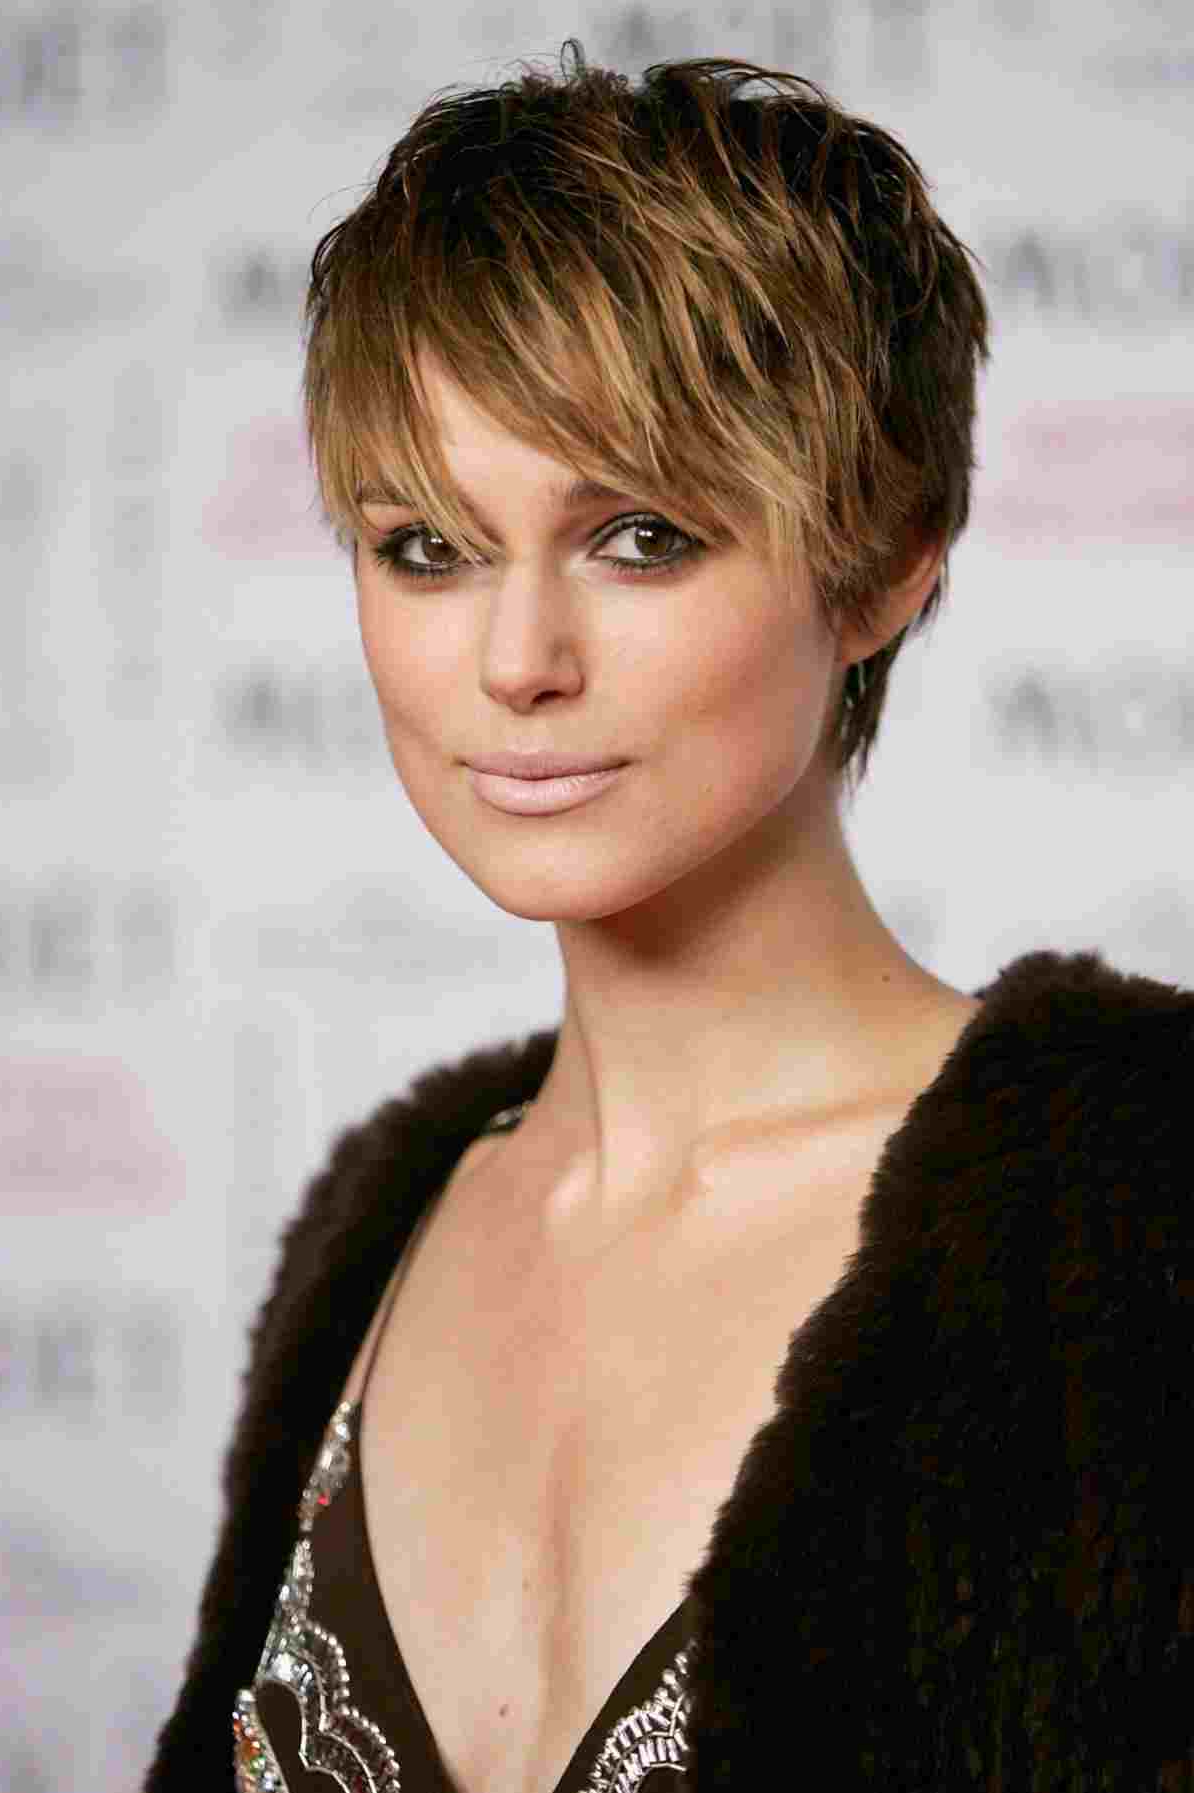 And Square Face S Over Style Women U Manrhexsecratuscom Awesome Regarding Short Hairstyles For A Square Face (Gallery 23 of 25)